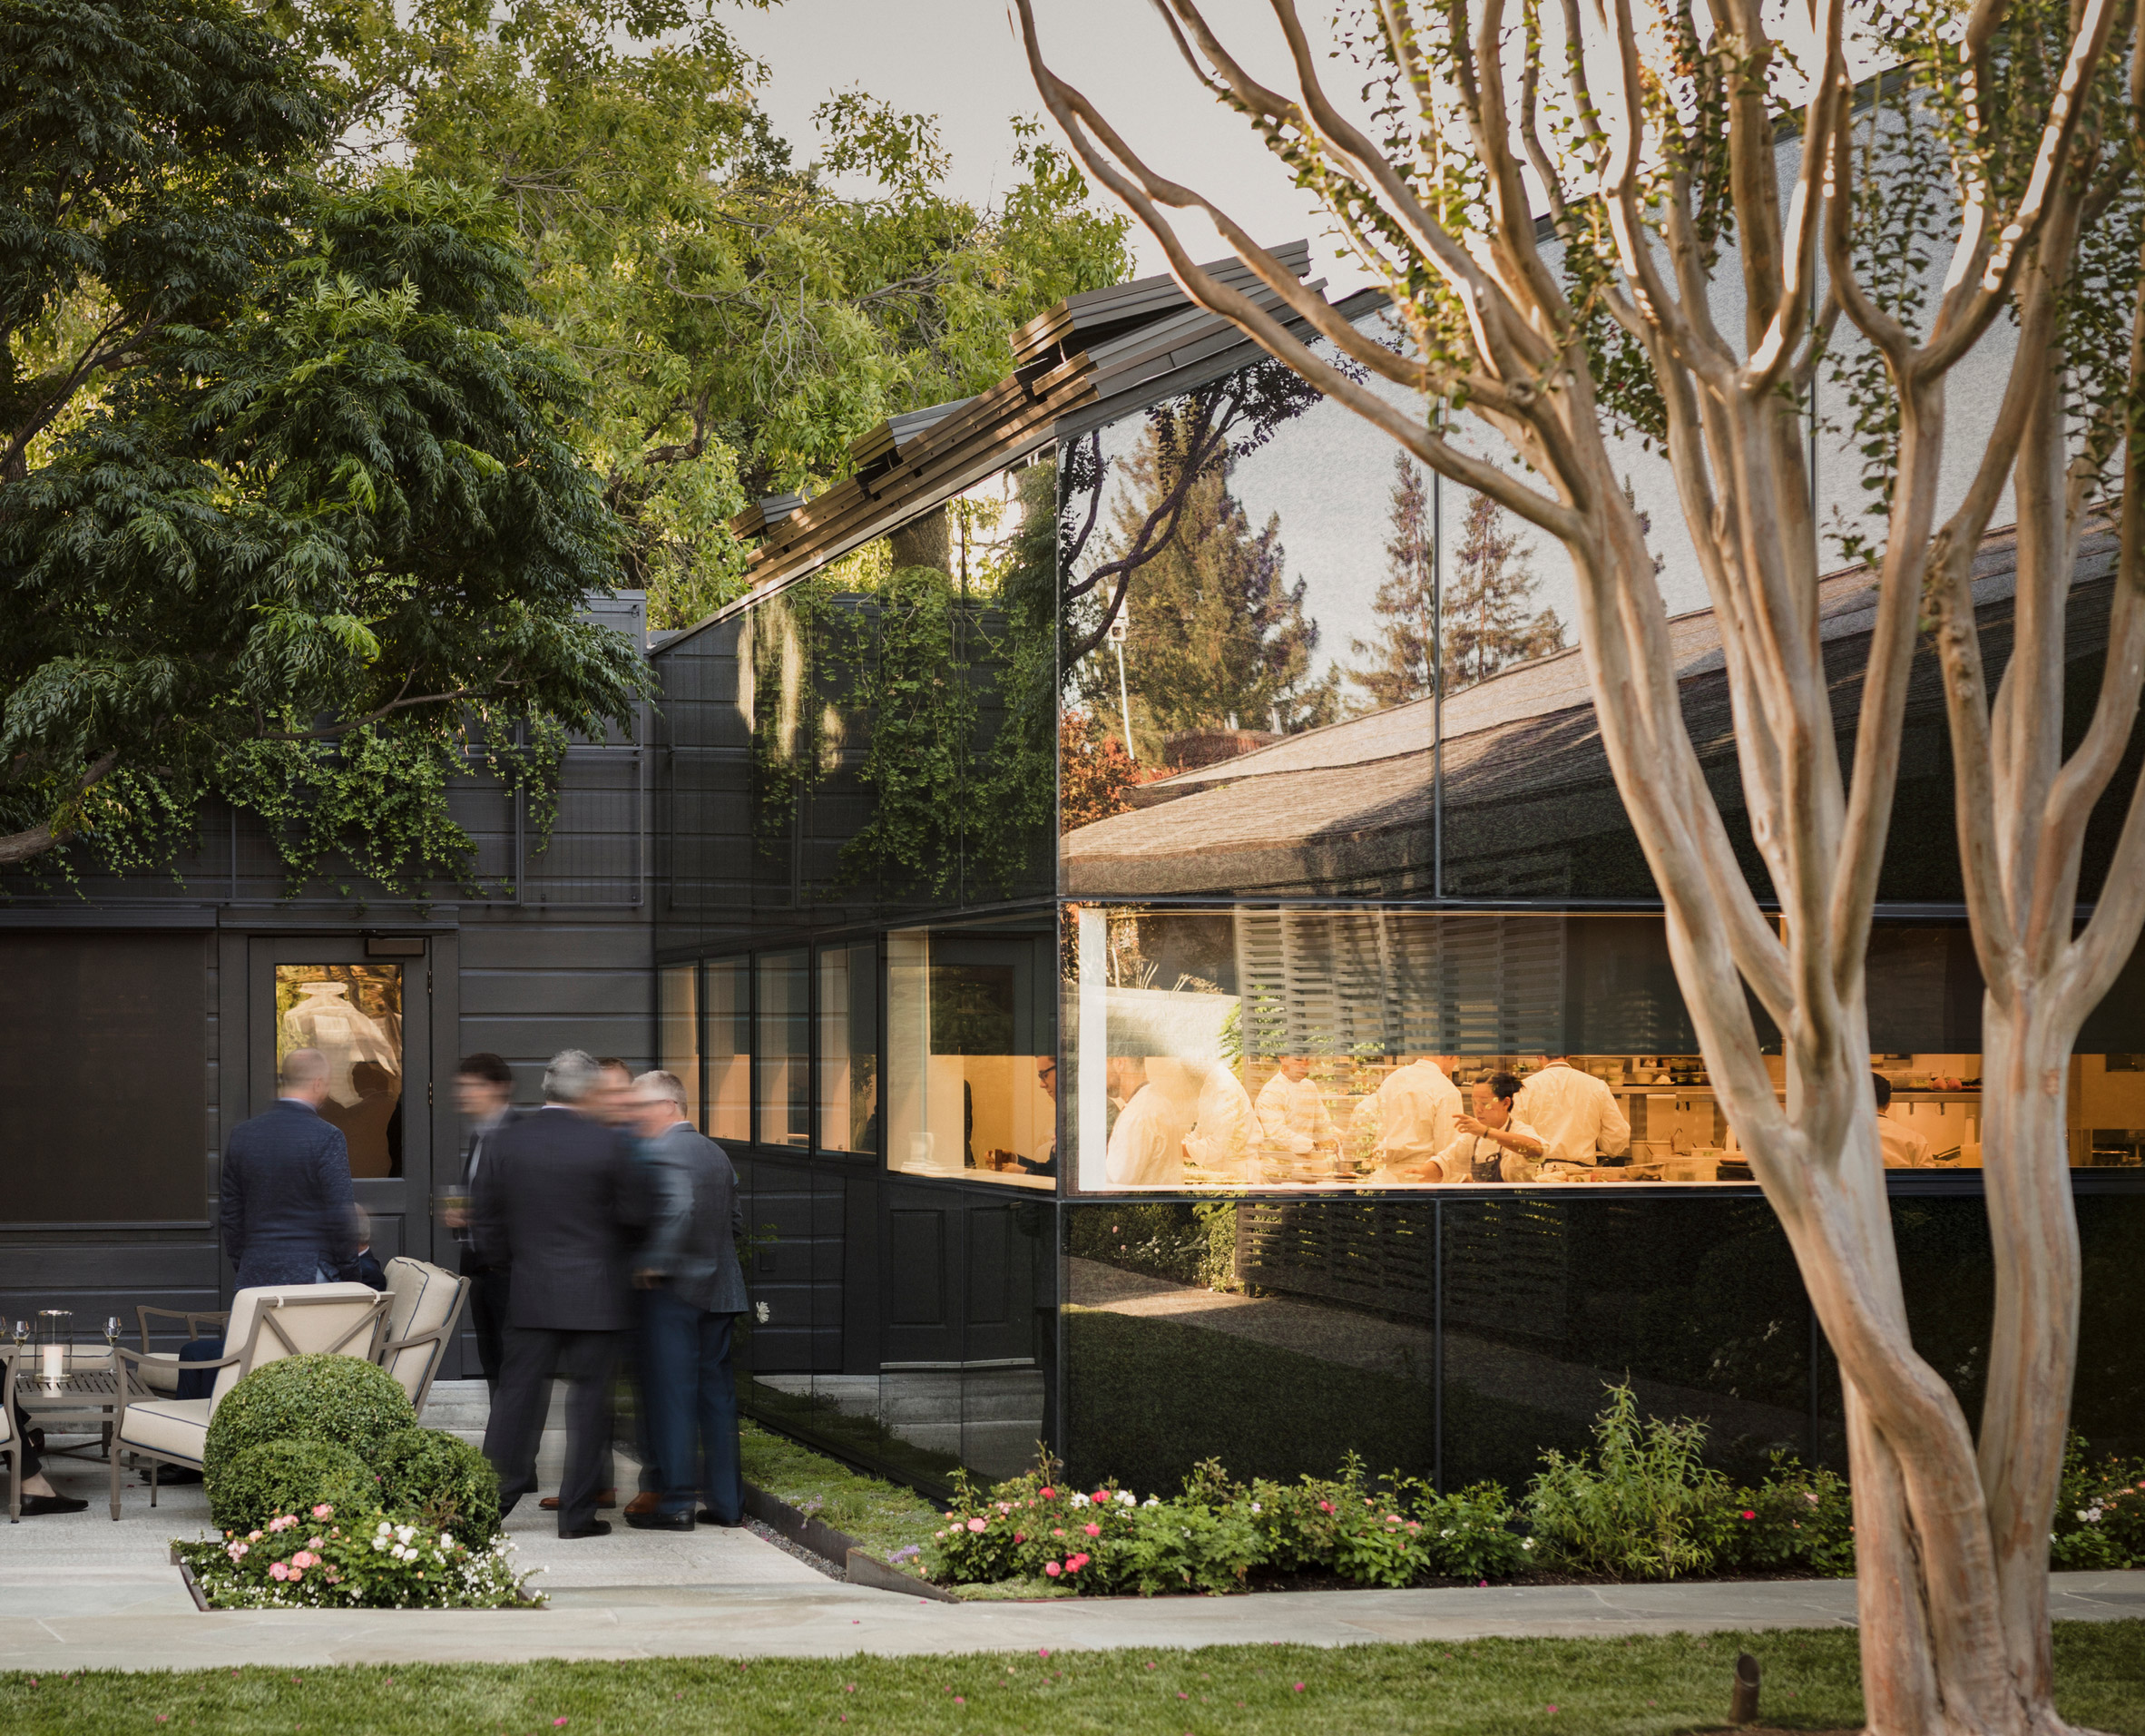 The French Laundry Kitchen Expansion and Courtyard Renovation by Snøhetta